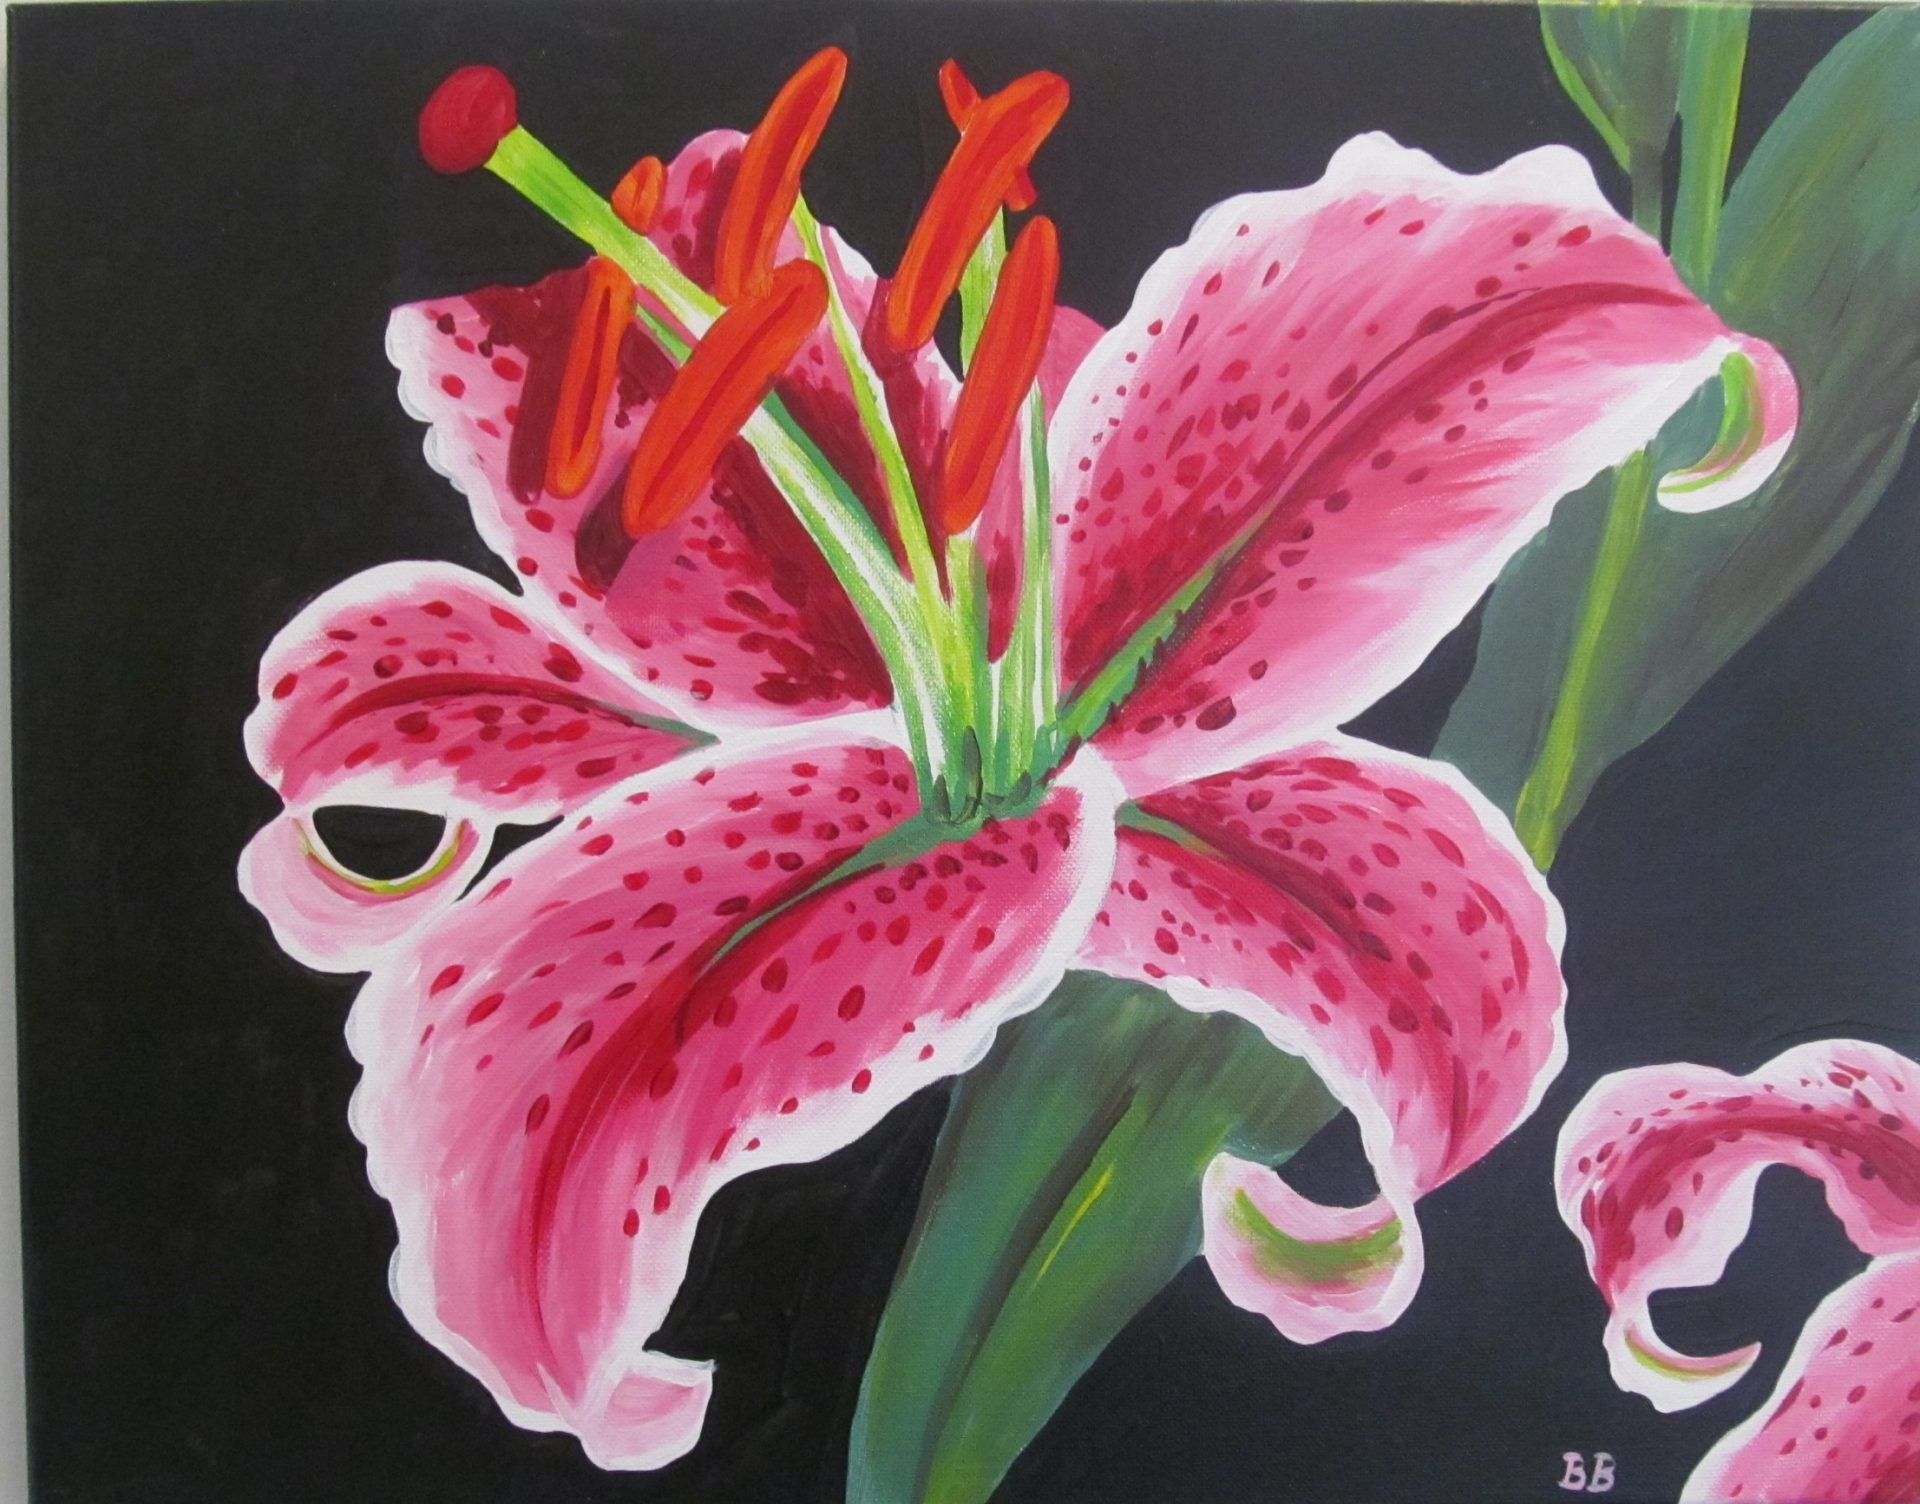 Cocktails and canvas stargazer lily visarts izmirmasajfo